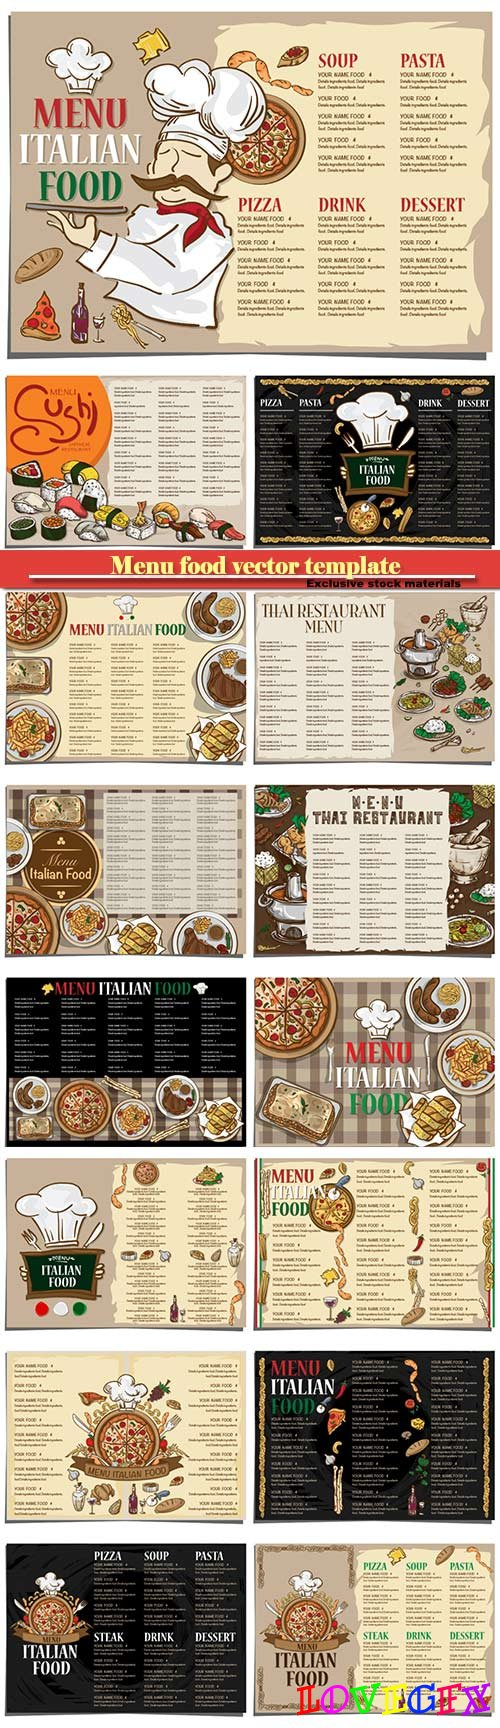 Menu sushi japanese food and italian vector food template